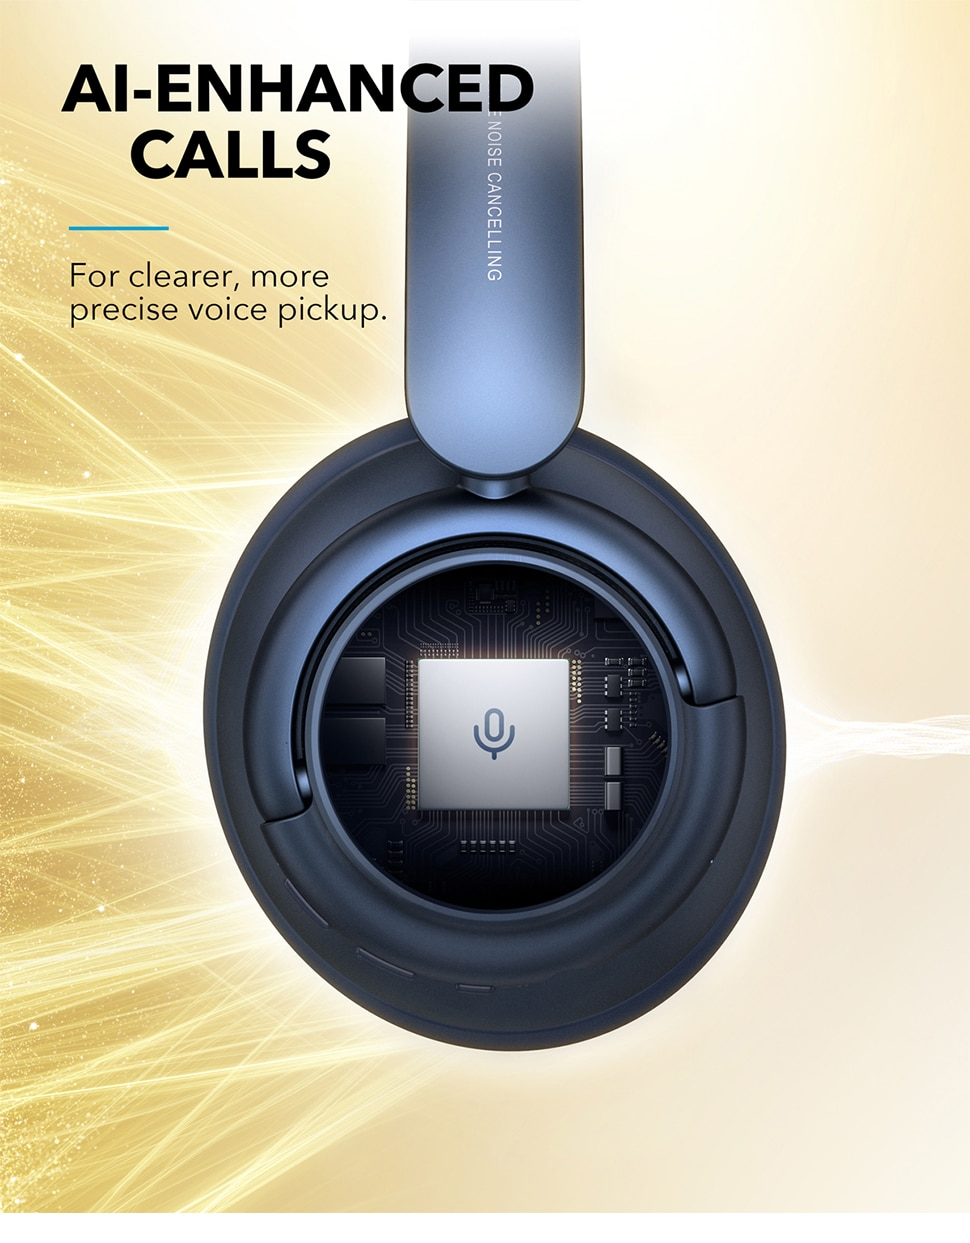 H293b6e76b15f44eead1ea956ea7b13b5K - Soundcore by Anker Life Q35 Multi Mode Active Noise Cancelling Headphones,40H Playtime, Comfortable Fit, Clear Calls